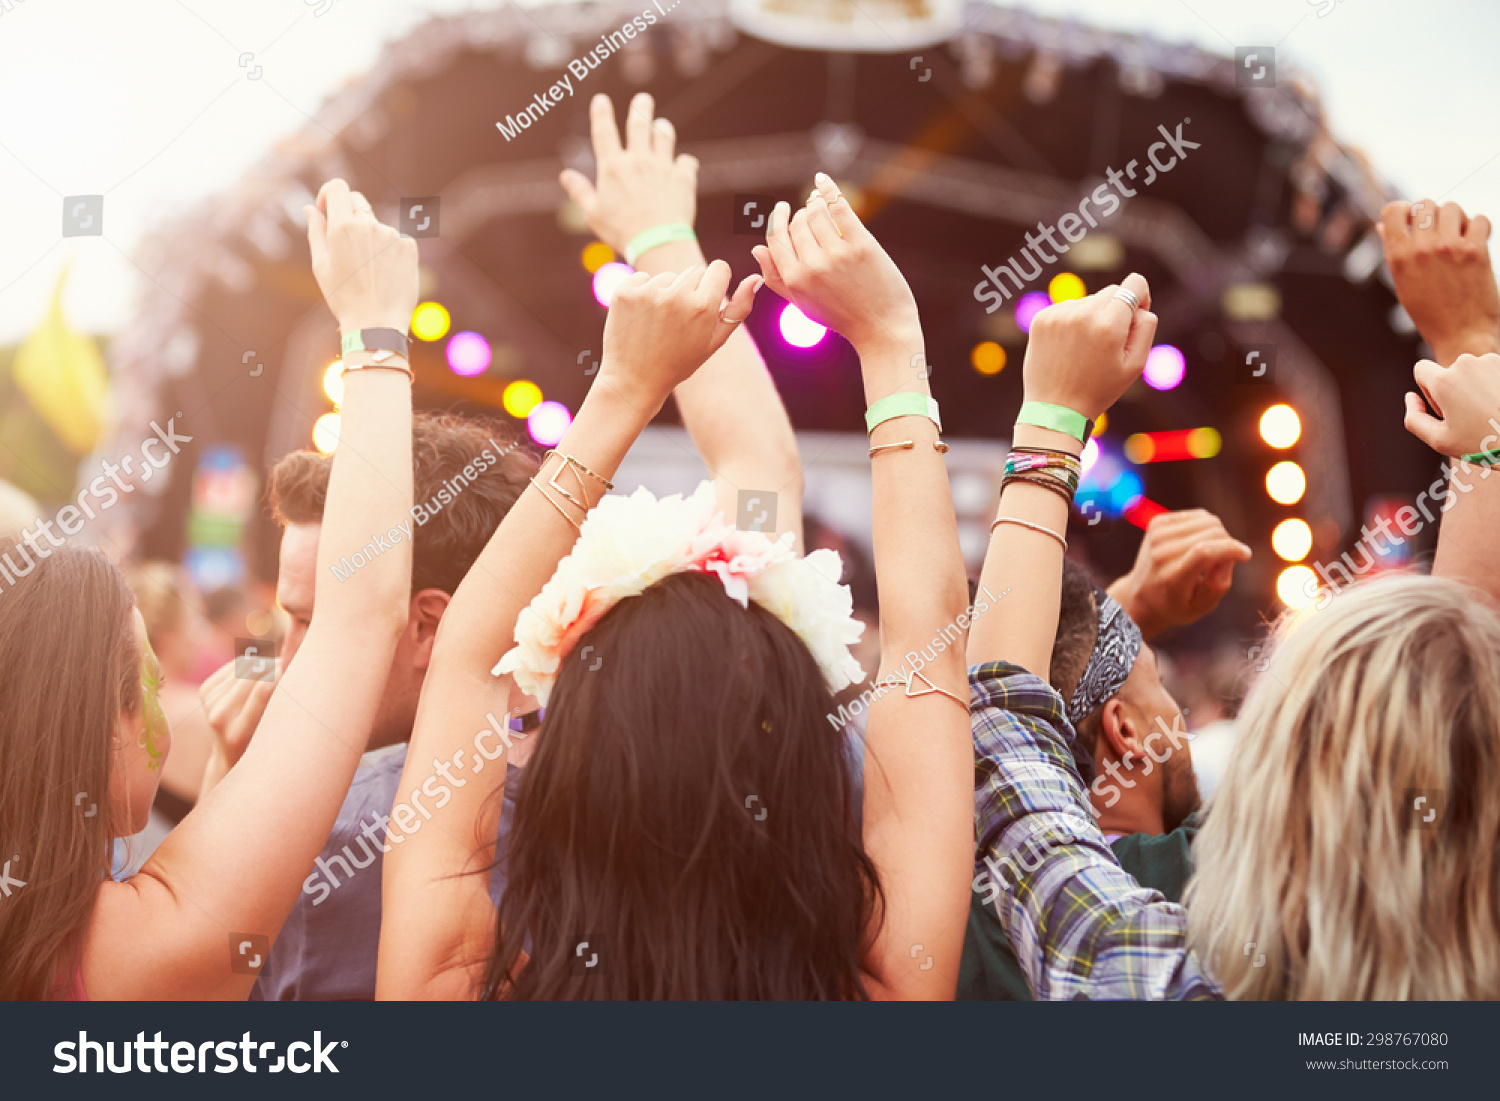 Audience with hands in the air at a music festival #298767080